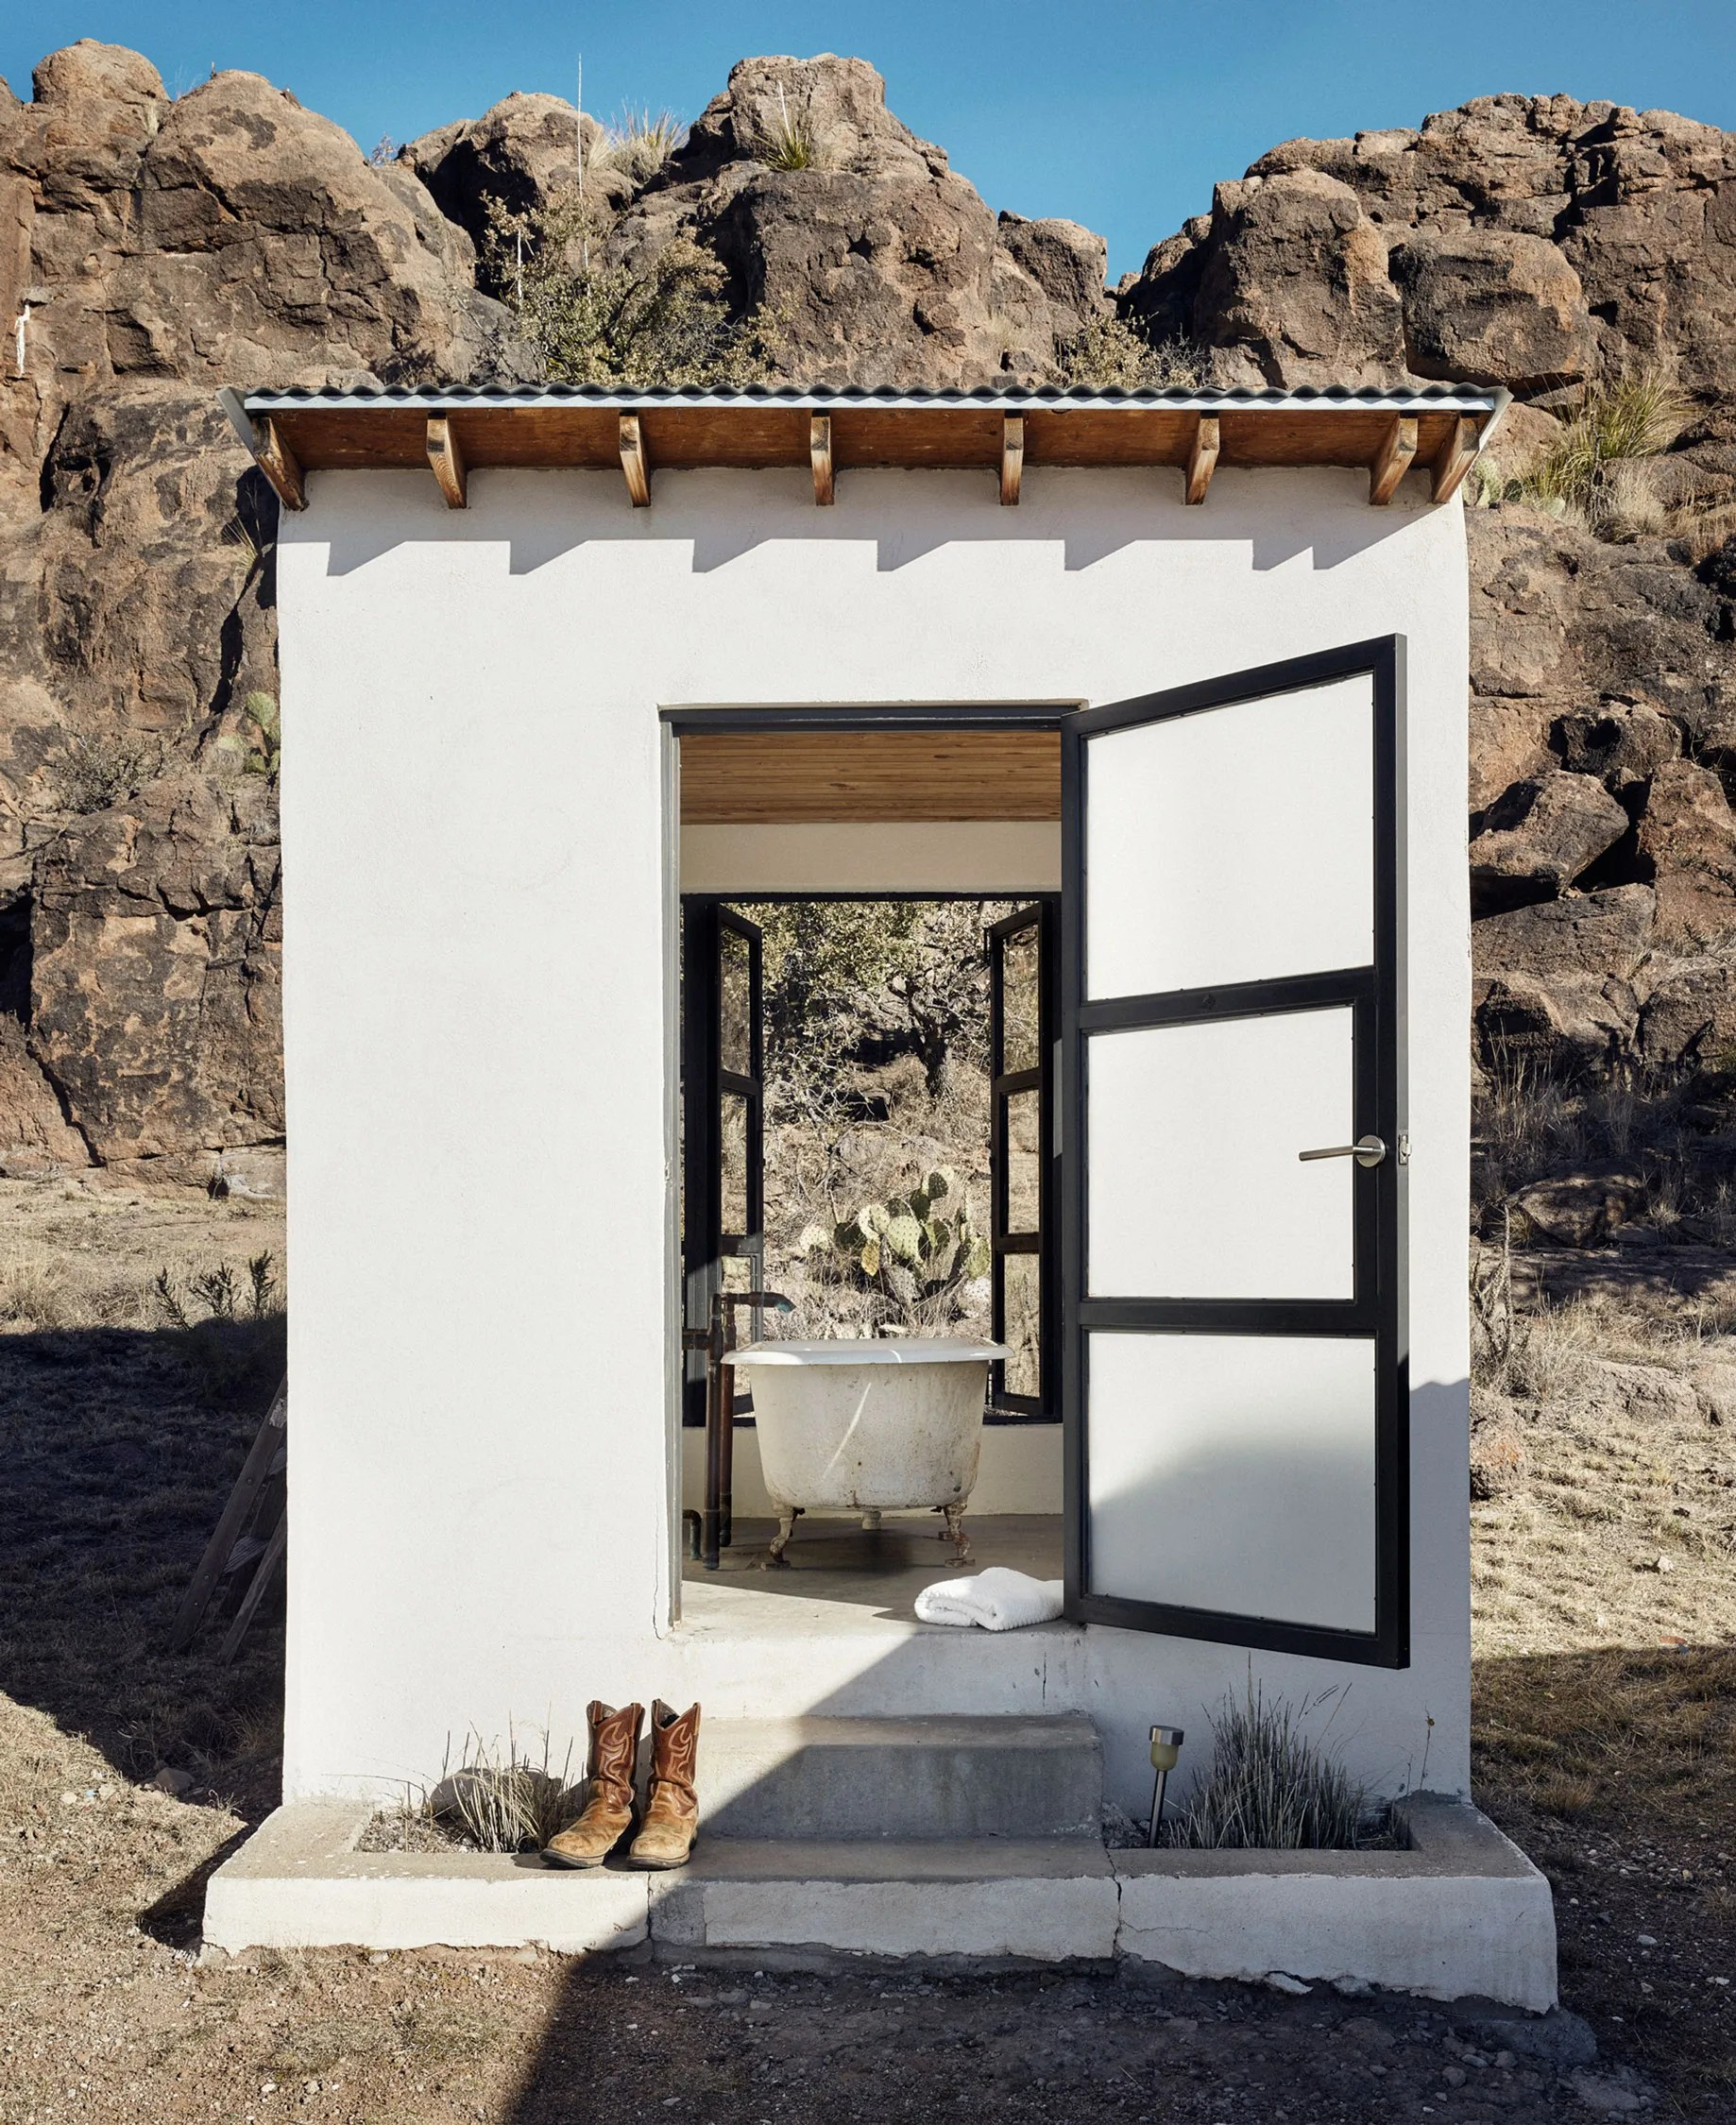 Desert Style Homes : desert, style, homes, Modernist, Marfa, Homes, Epitomize, High-Desert, Style, Architectural, Digest